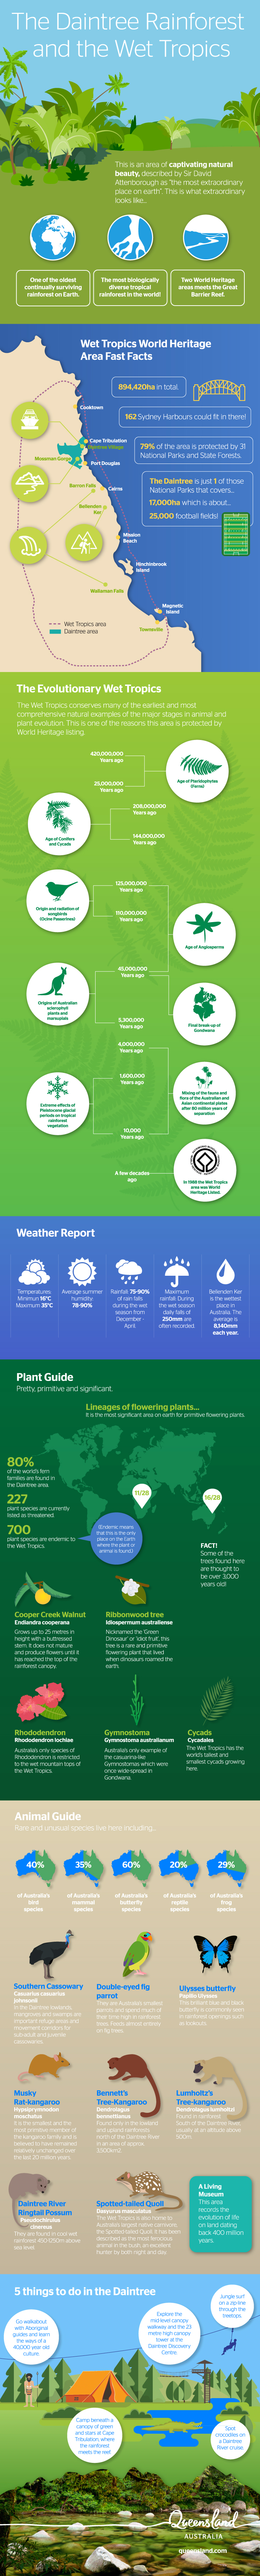 Daintree Wet Tropics Infographic